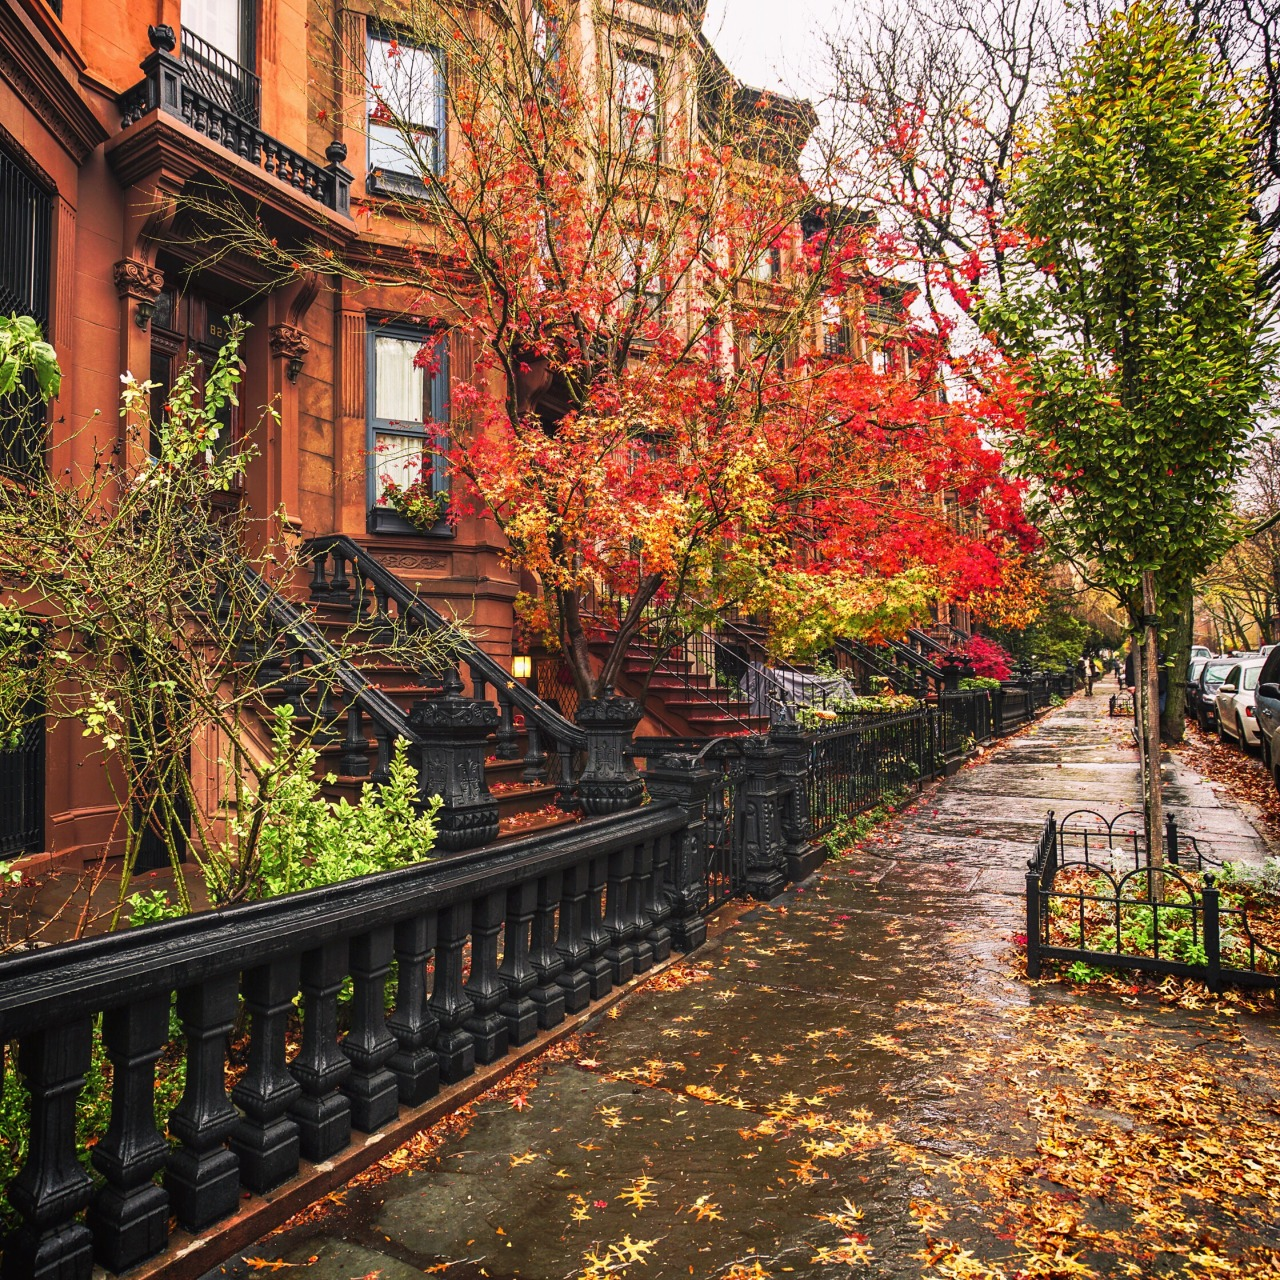 autumn in new york - photo #14